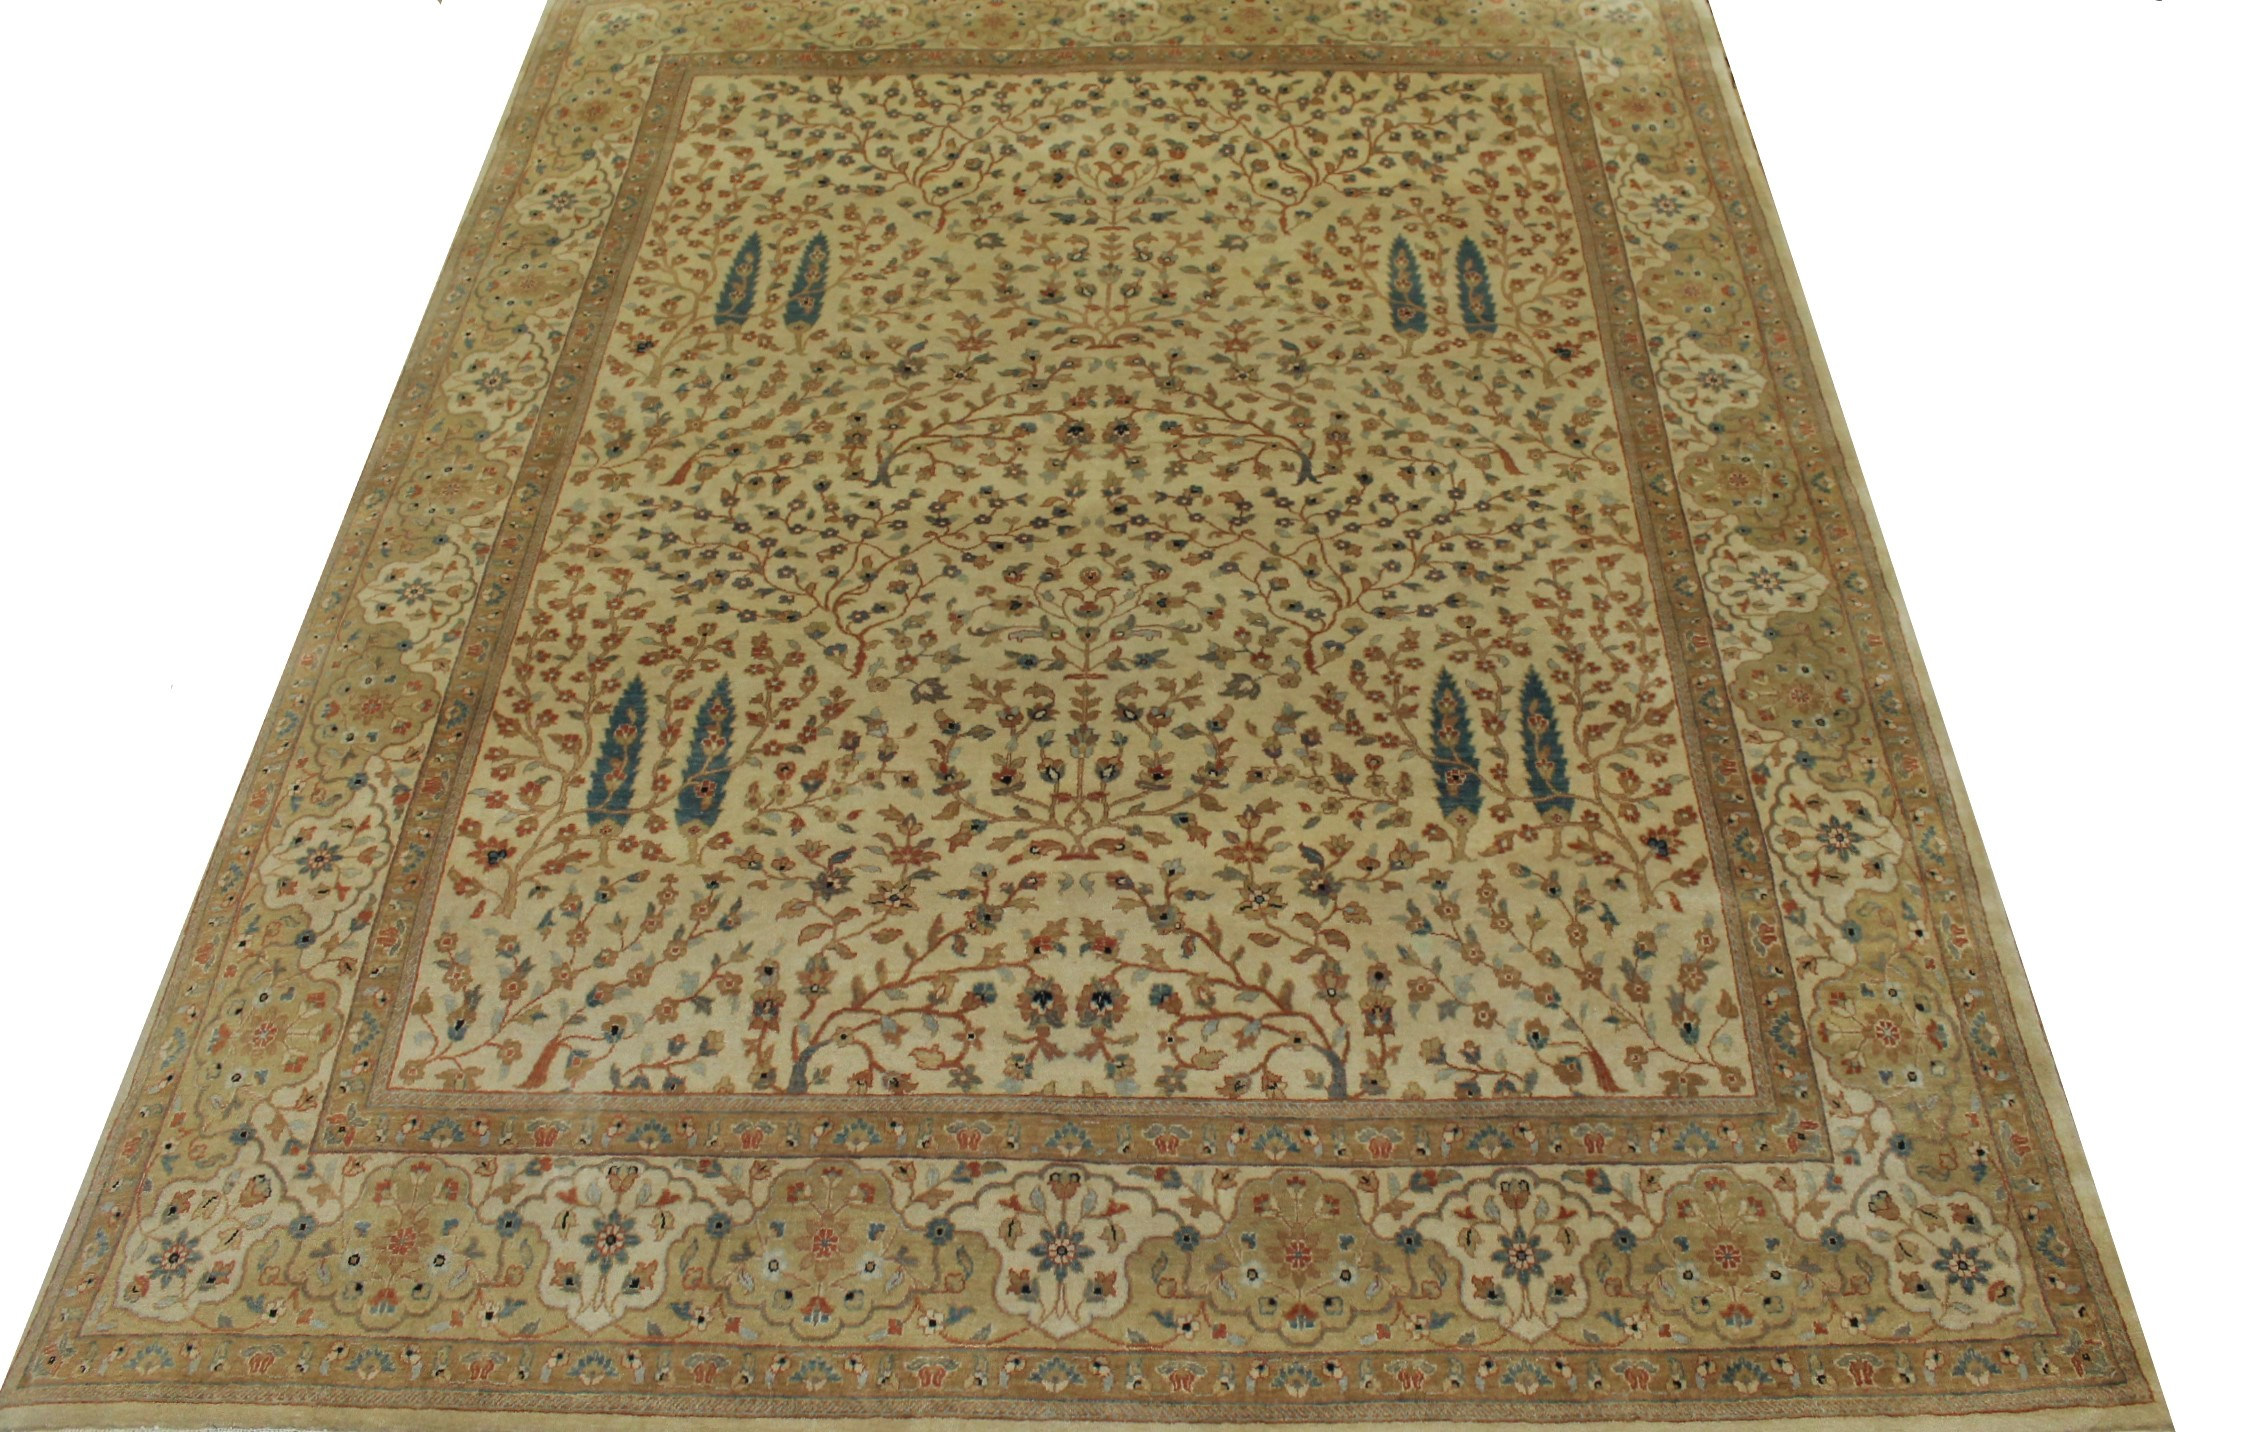 8x10 Traditional Hand Knotted Wool Area Rug - MR6105